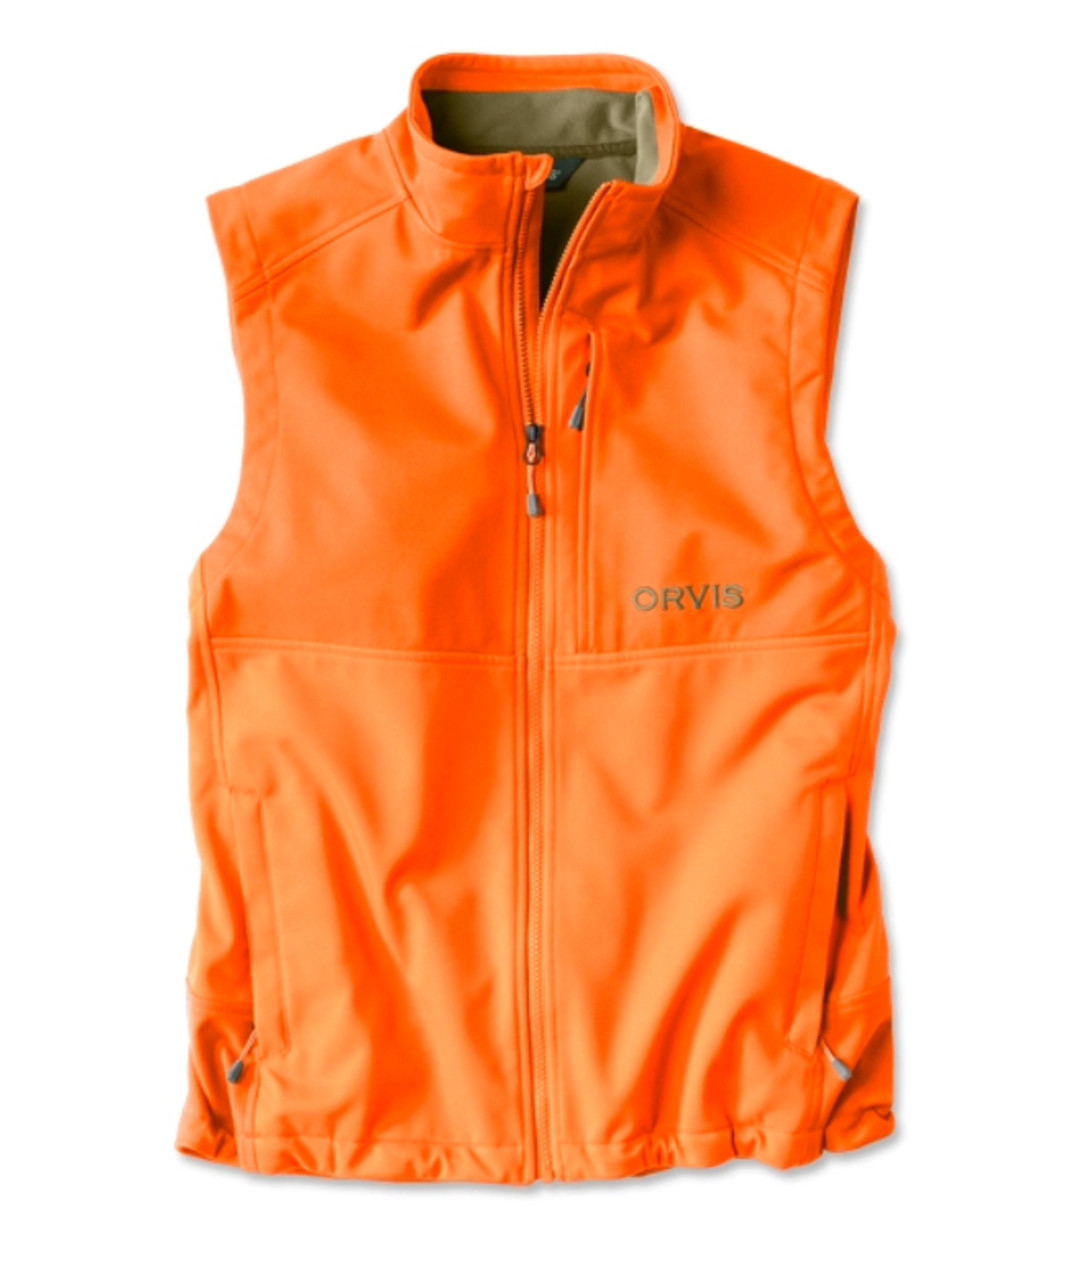 Orvis Softshell Upland Hunting Vest 2P6F